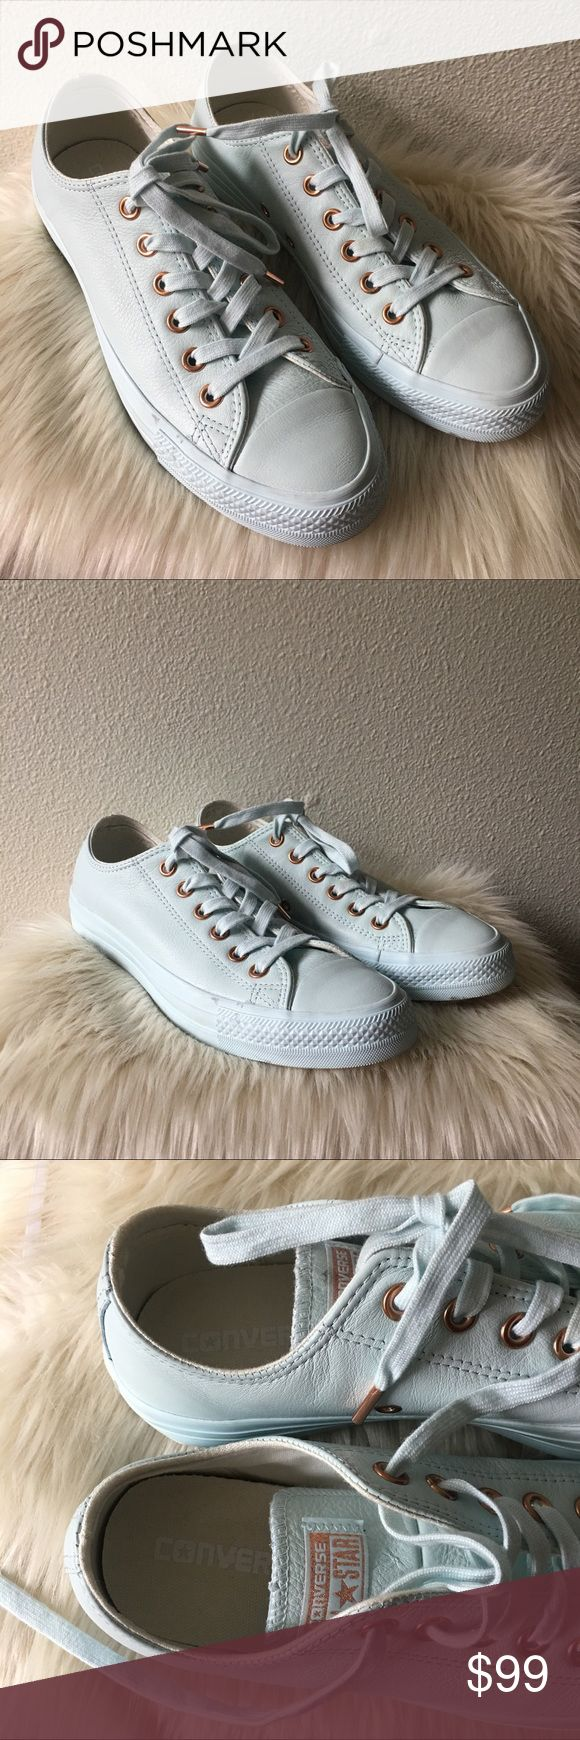 Powder Blue Converse Exclusive Bought it from UK and this is limited edition! Still great as brand new but no box included :) true to size for womens! Will fit 7.5-8 womens! Converse Shoes Sneakers